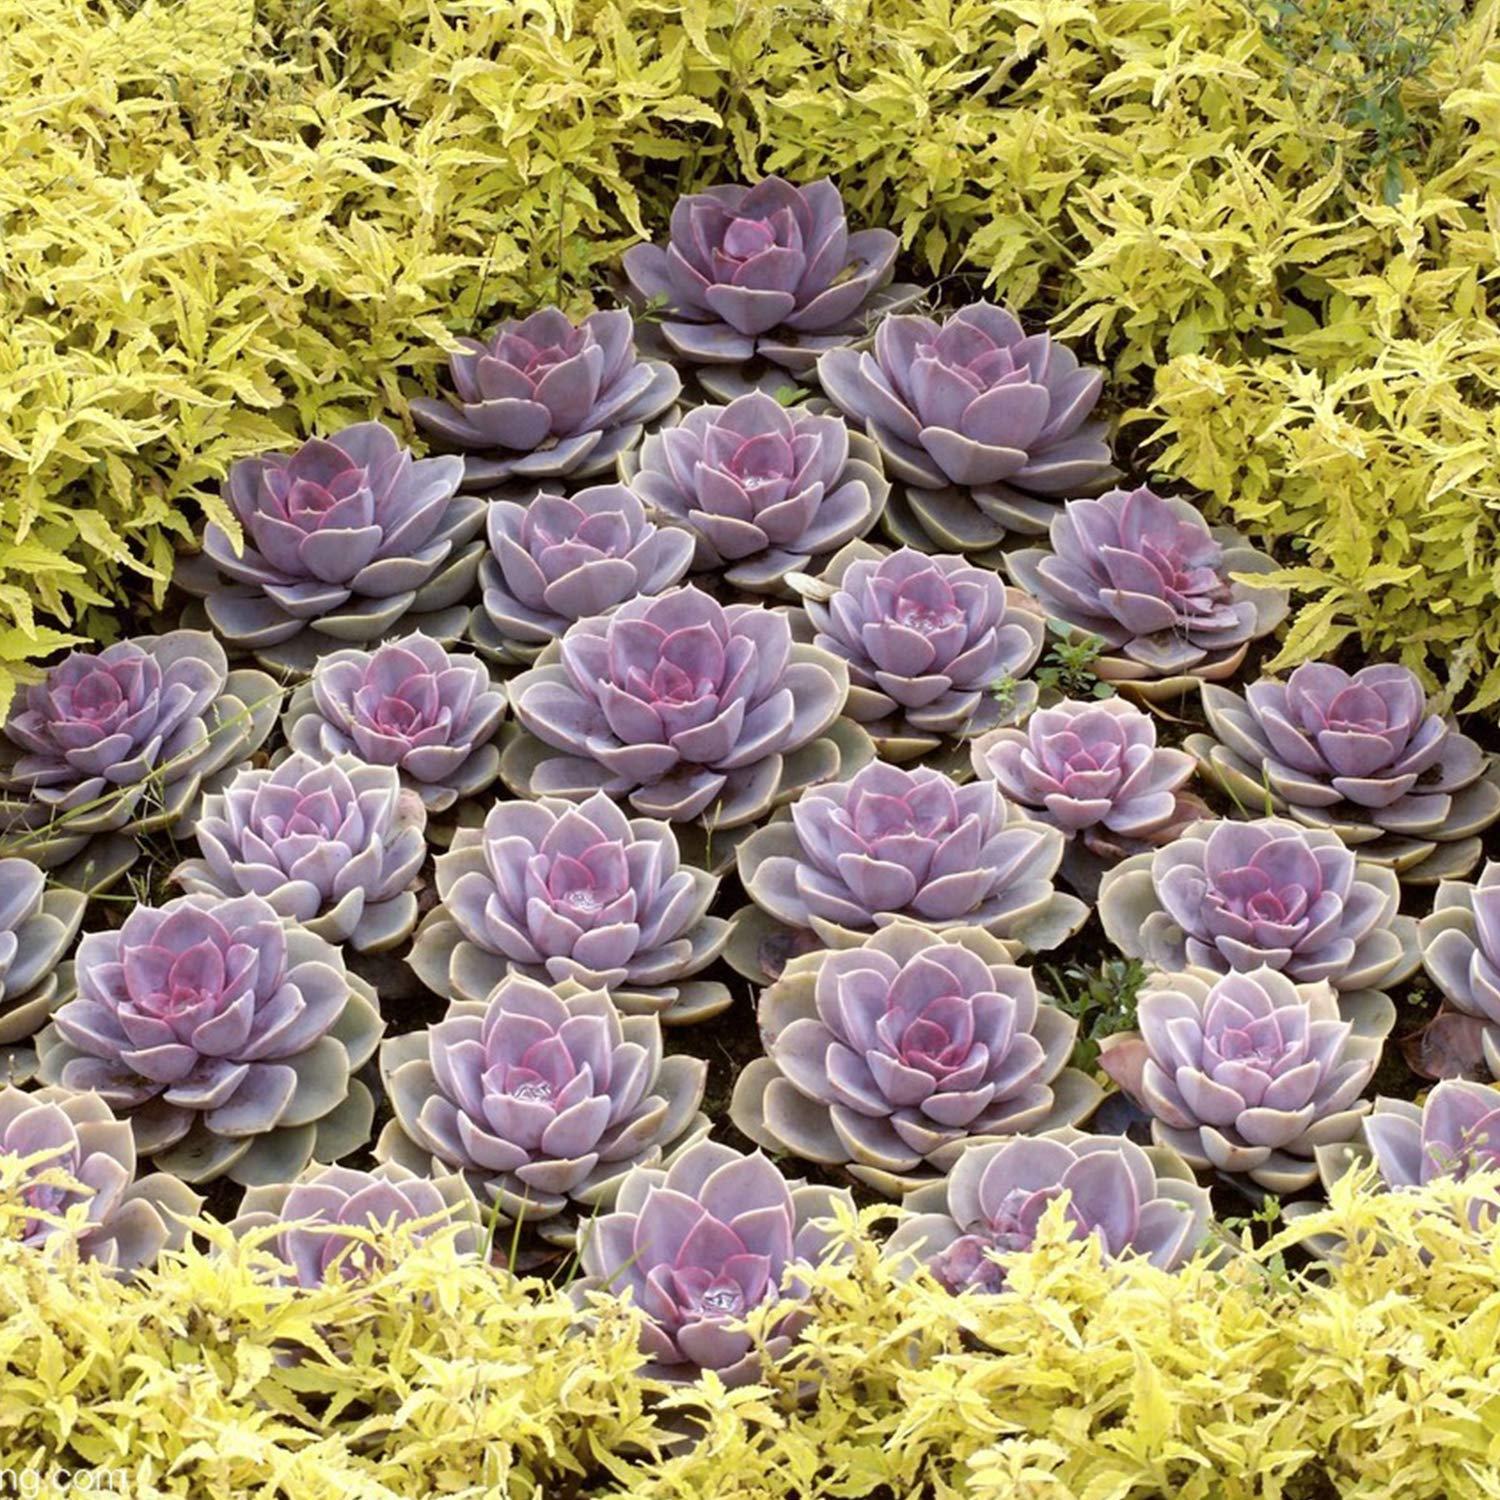 Rosette Succulents 4 Assorted Rooted Mini Succulents in 2 Planter Pots with Soil Wedding Favor Terrariums Real Live Succulents Bonsai for Indoor Home Office Cactus Decor